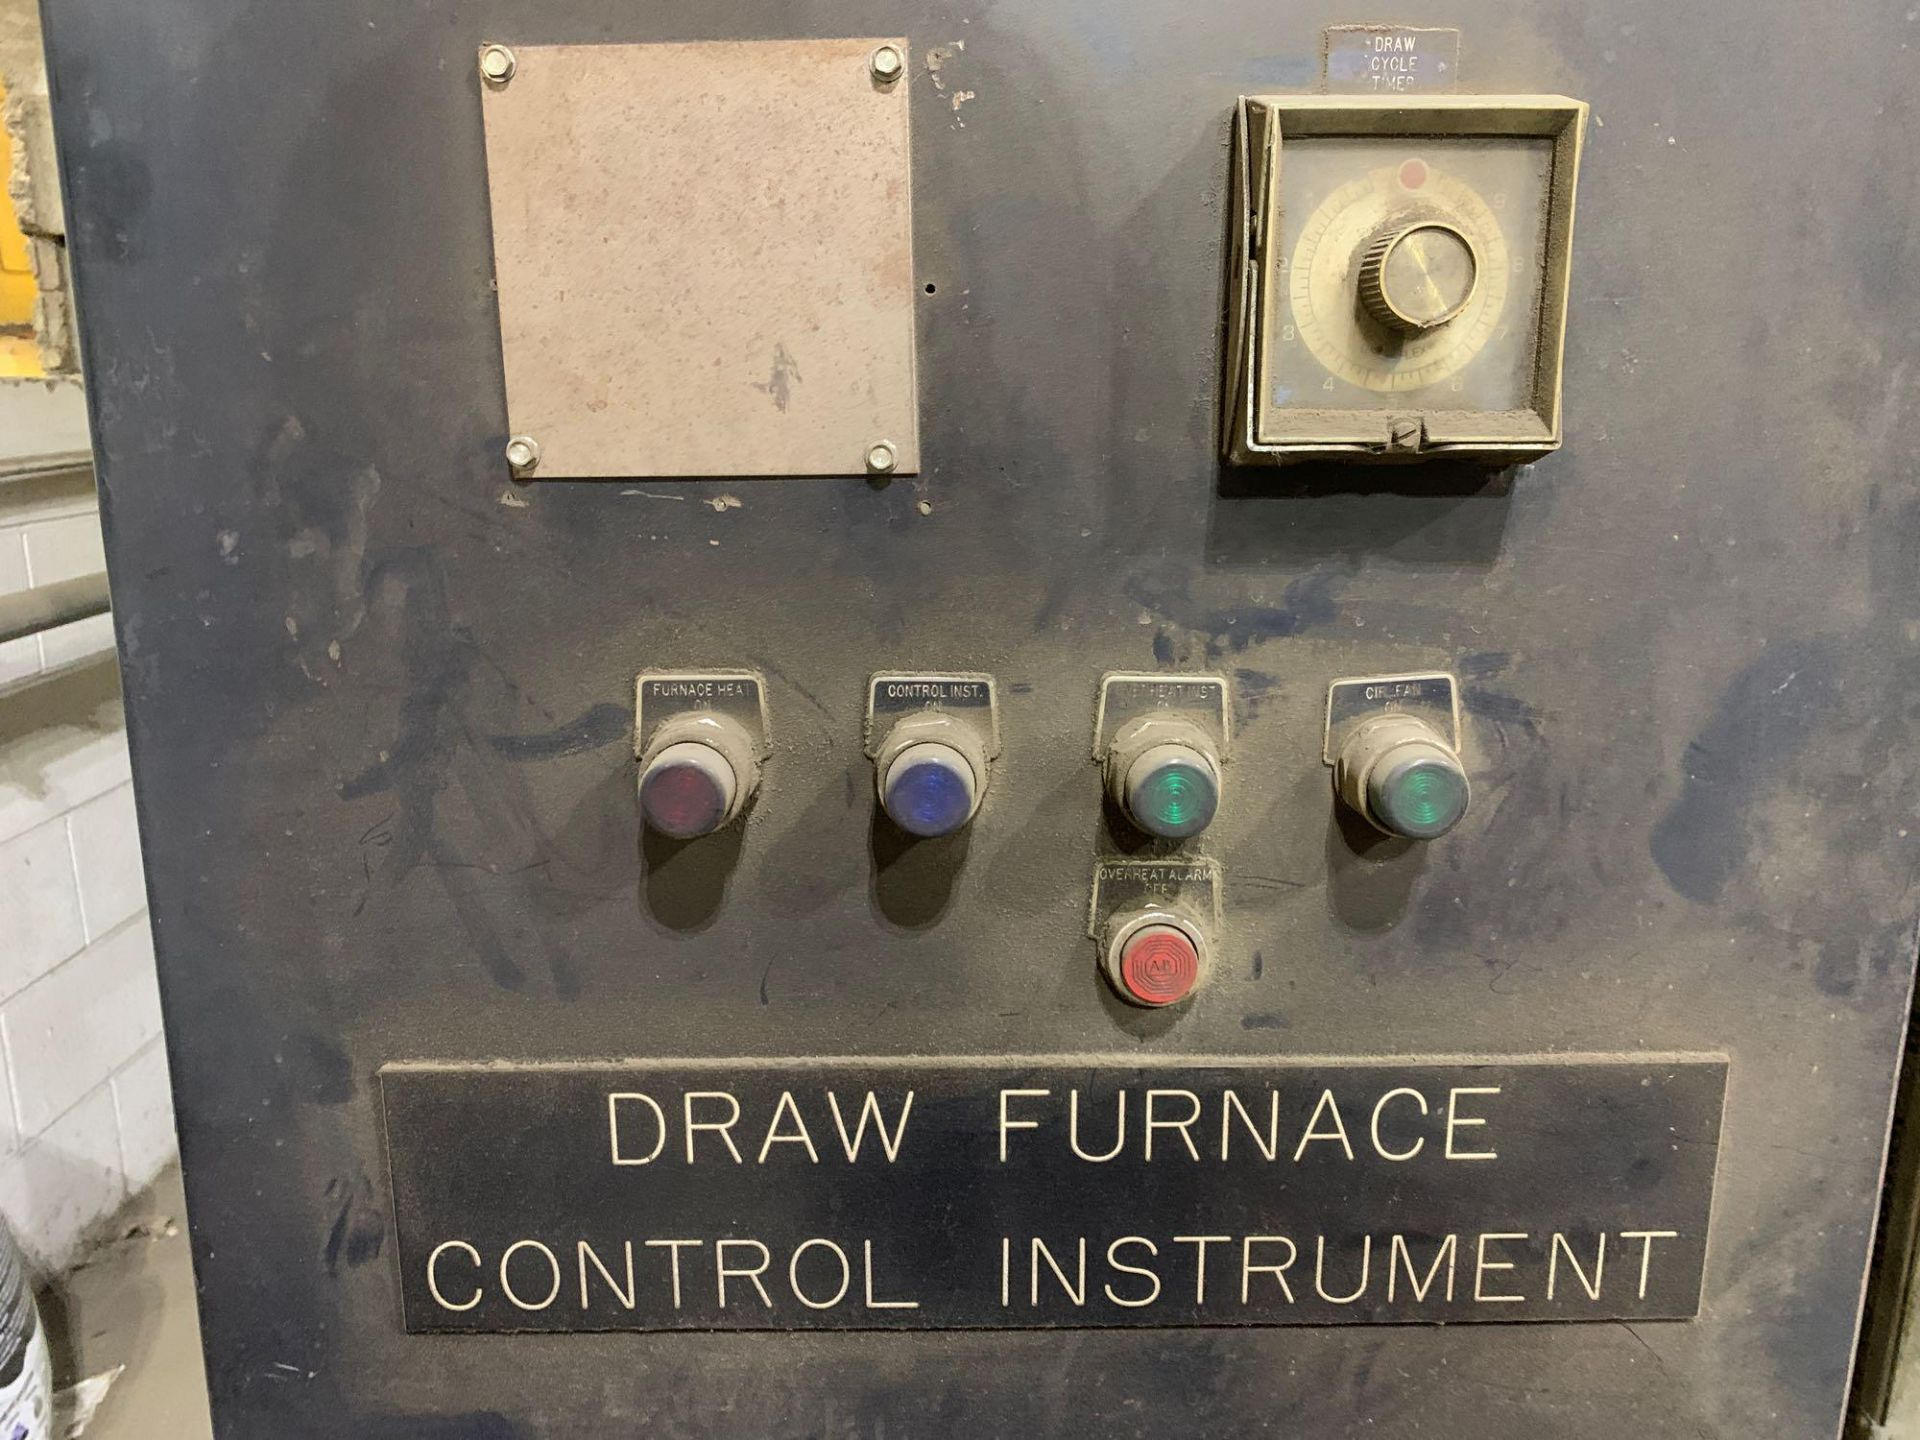 Dow Furnace Co. Electric Draw Furnace Seller States It Will Do At Least 1200 Degrees Model Bxe-24362 - Image 8 of 21